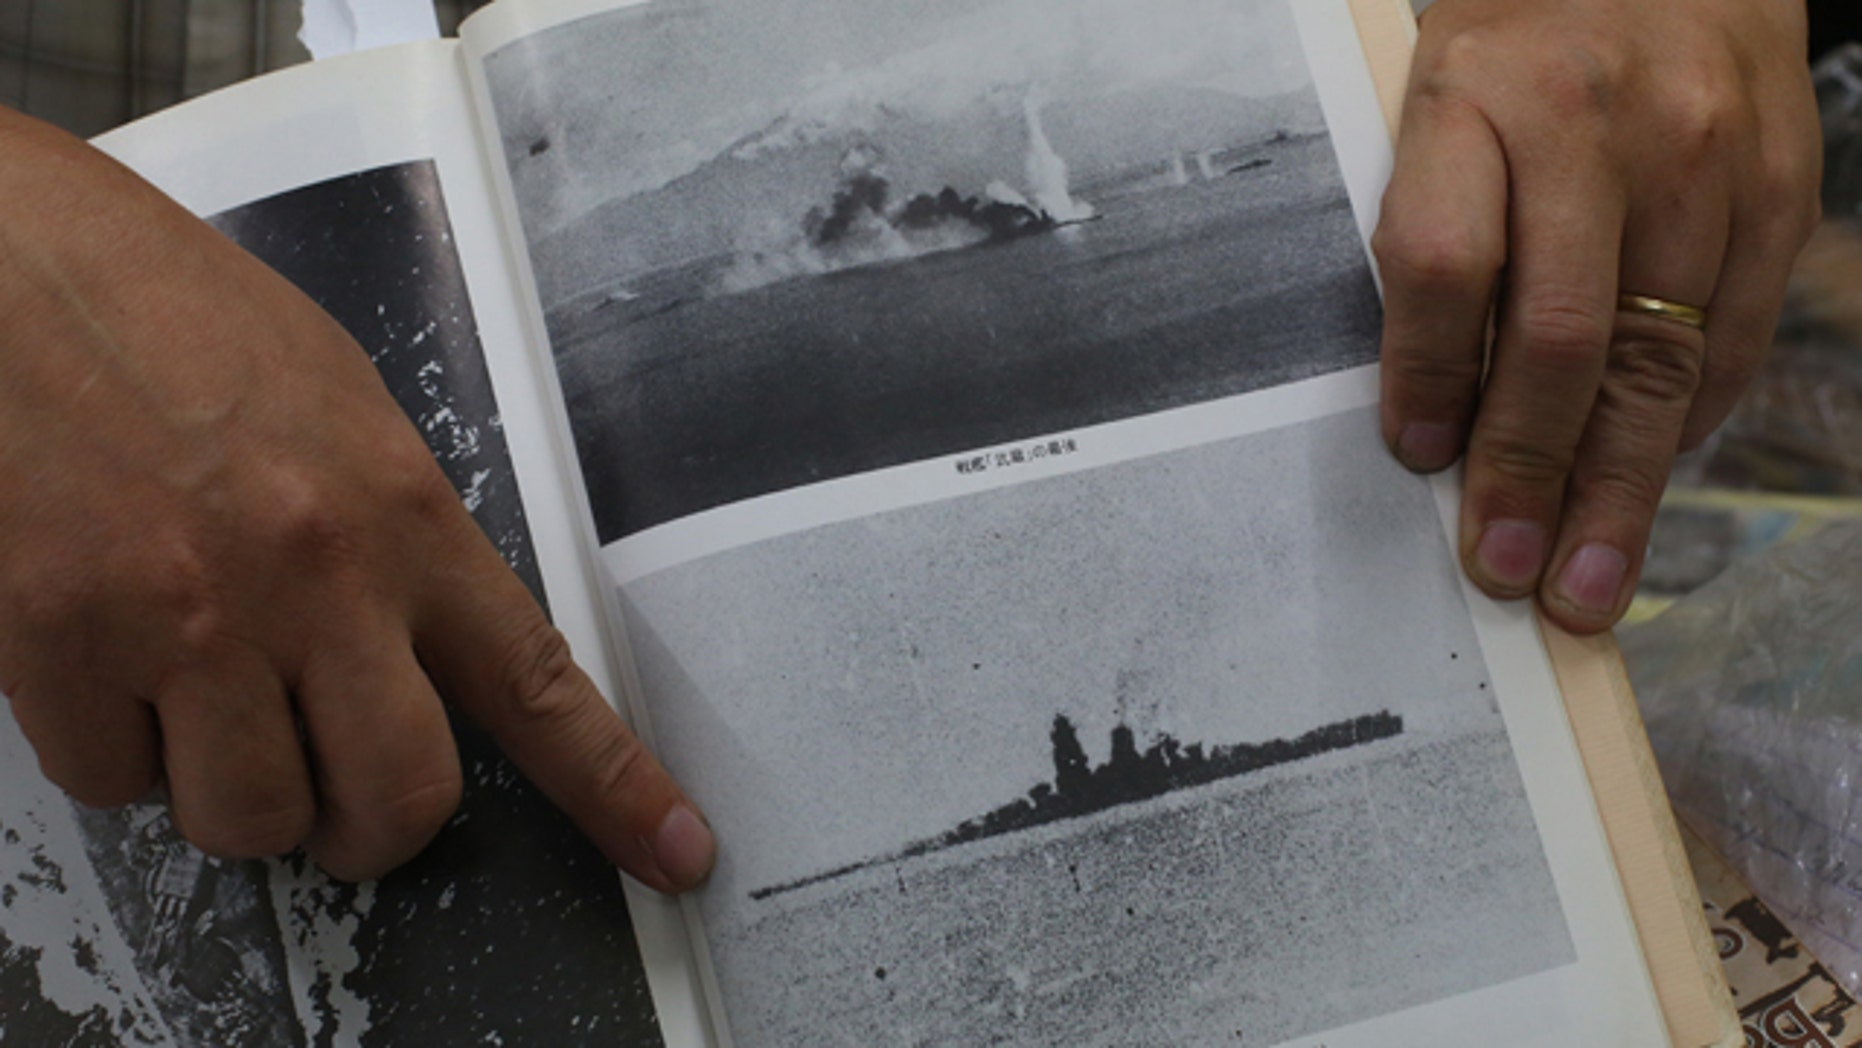 March 5, 2015: Filipino World War II historian Professor Rico Jose shows pictures before the Japanese World War II battleship Musashi sank as he talks to reporters at his office in suburban Quezon city, north of Manila. (AP Photo/Aaron Favila)